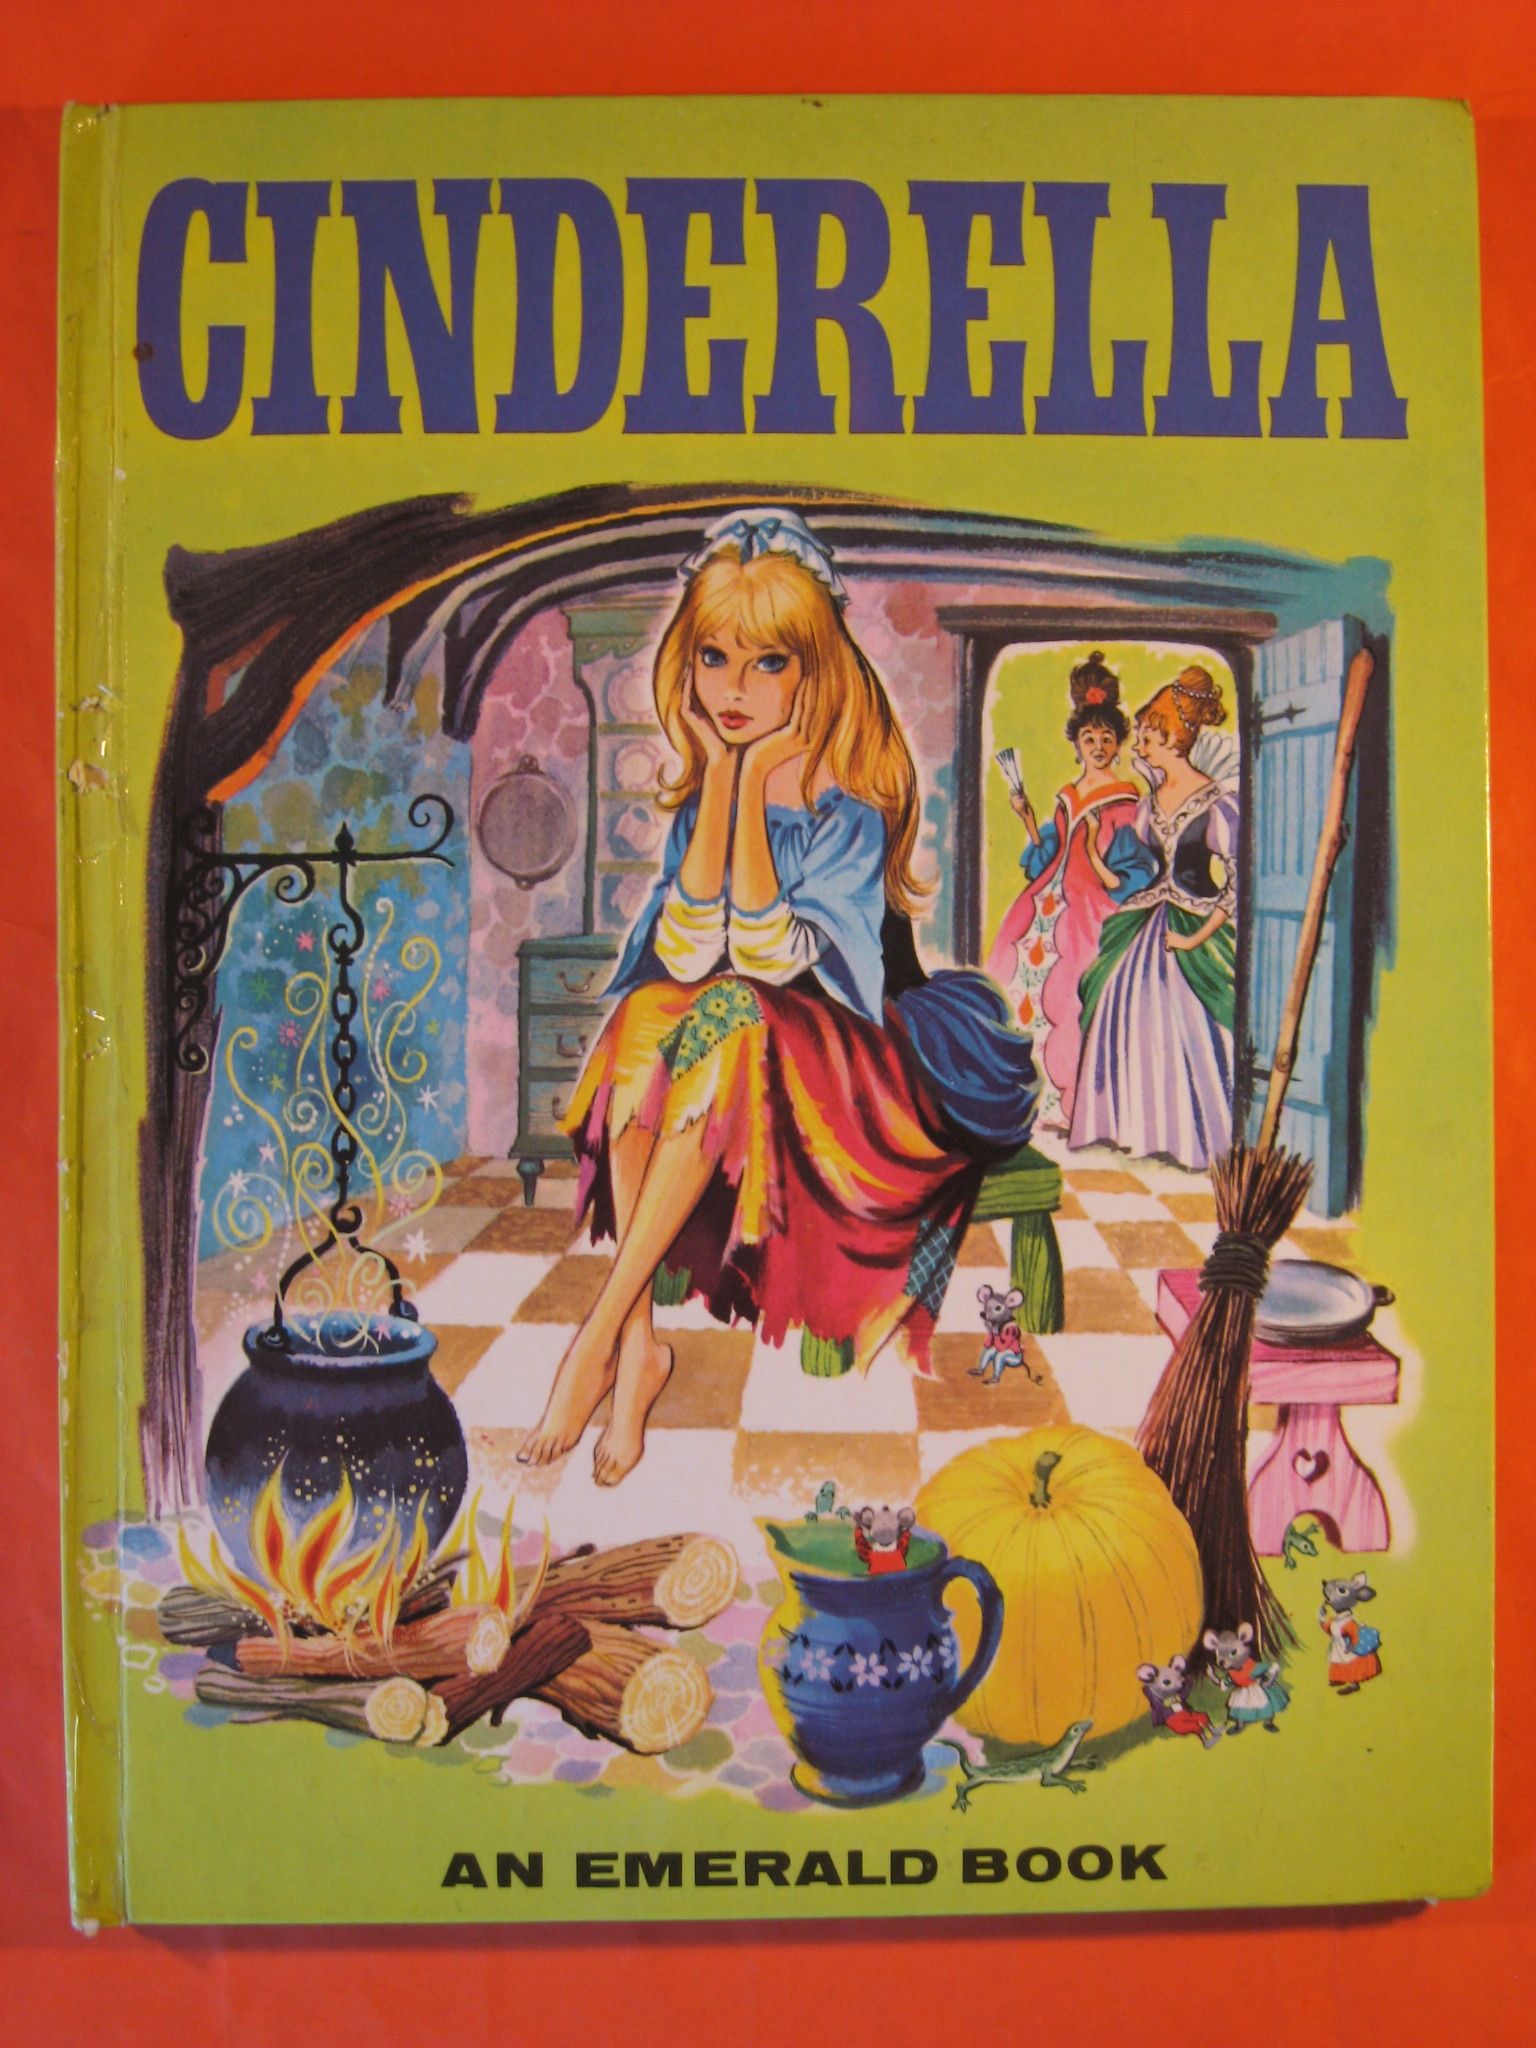 Two 1965 Fairy Tale Books:  Snow White and the Seven Dwarfs and Cinderella